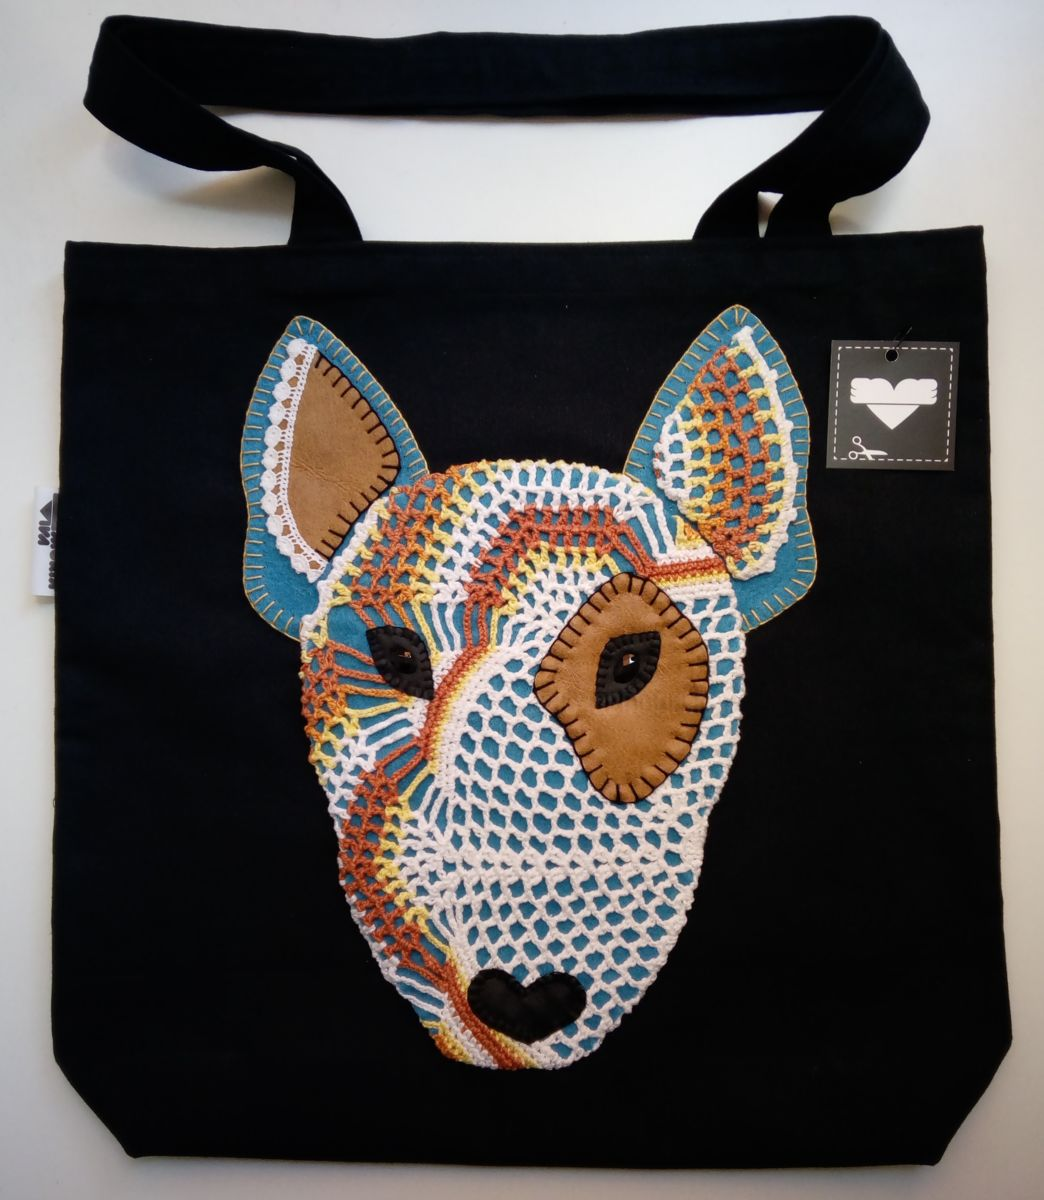 Unique Handstiched Bull Terrier Shoulder Bag - Textile Art ©2018 by Memória Viva -            bull terrier, memoria viva